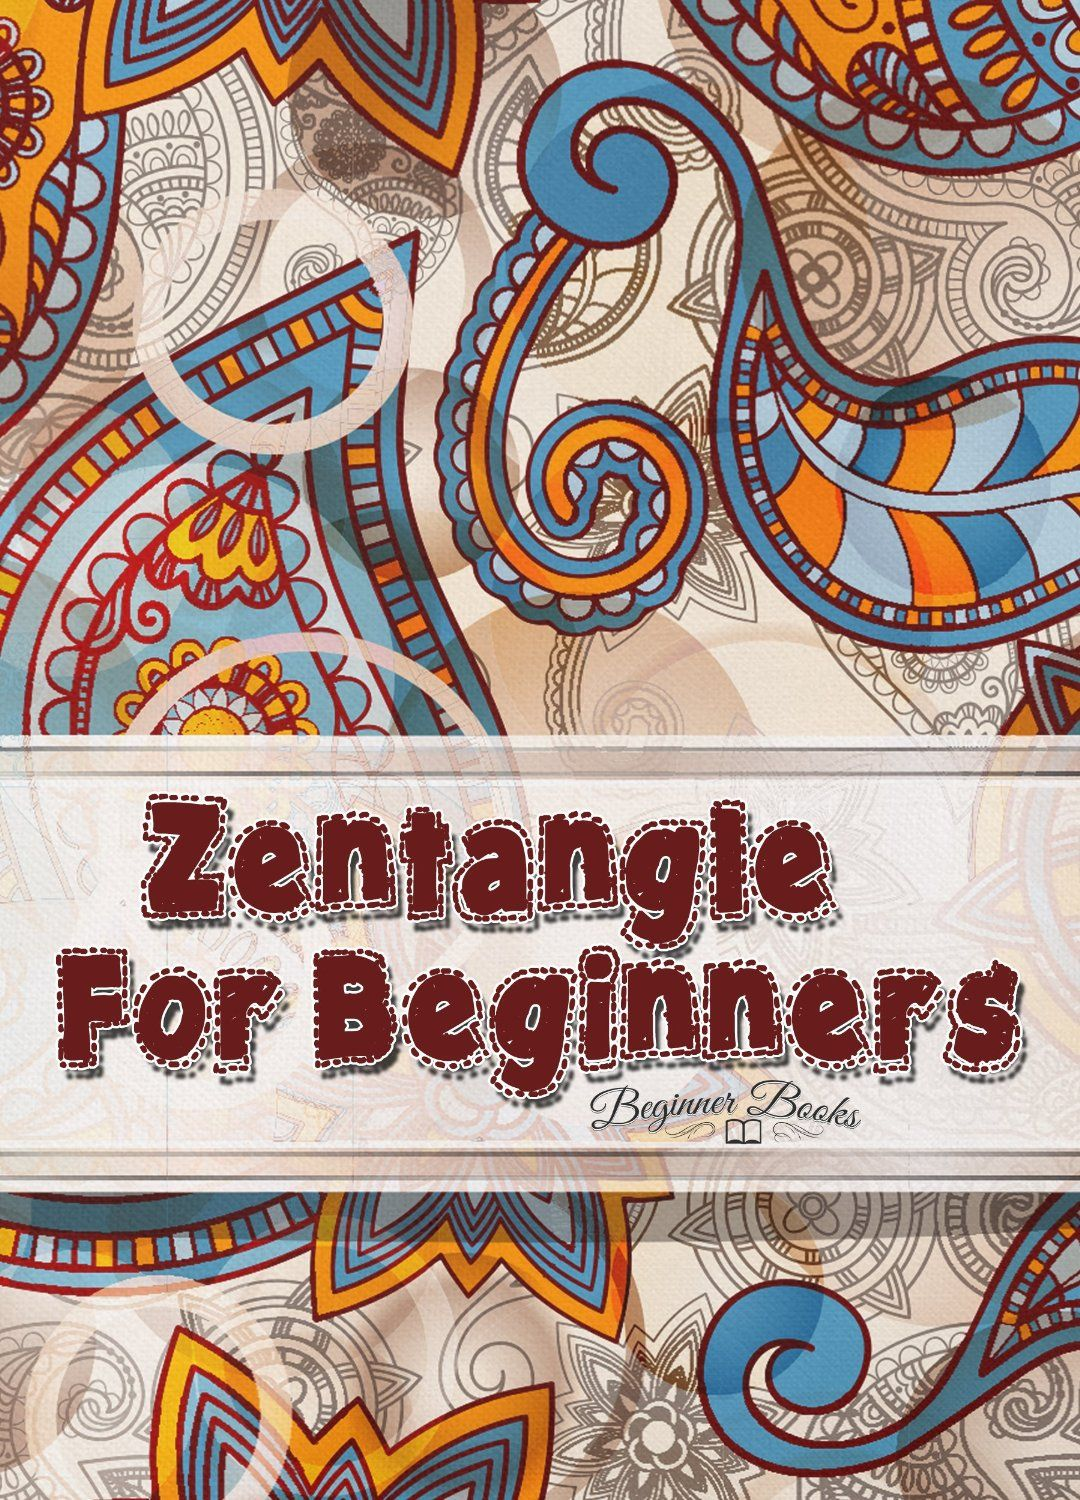 Zentangle: Zentangle for Beginners: The Ultimate Guide to Learning and Having Fun with Zentangle (Zentangle for Beginners - Zentangle Books - Zentangle ... Patterns - Zentangle Kit) (English Edition) eBook: Amy Rose: Amazon.fr: Boutique Kindle